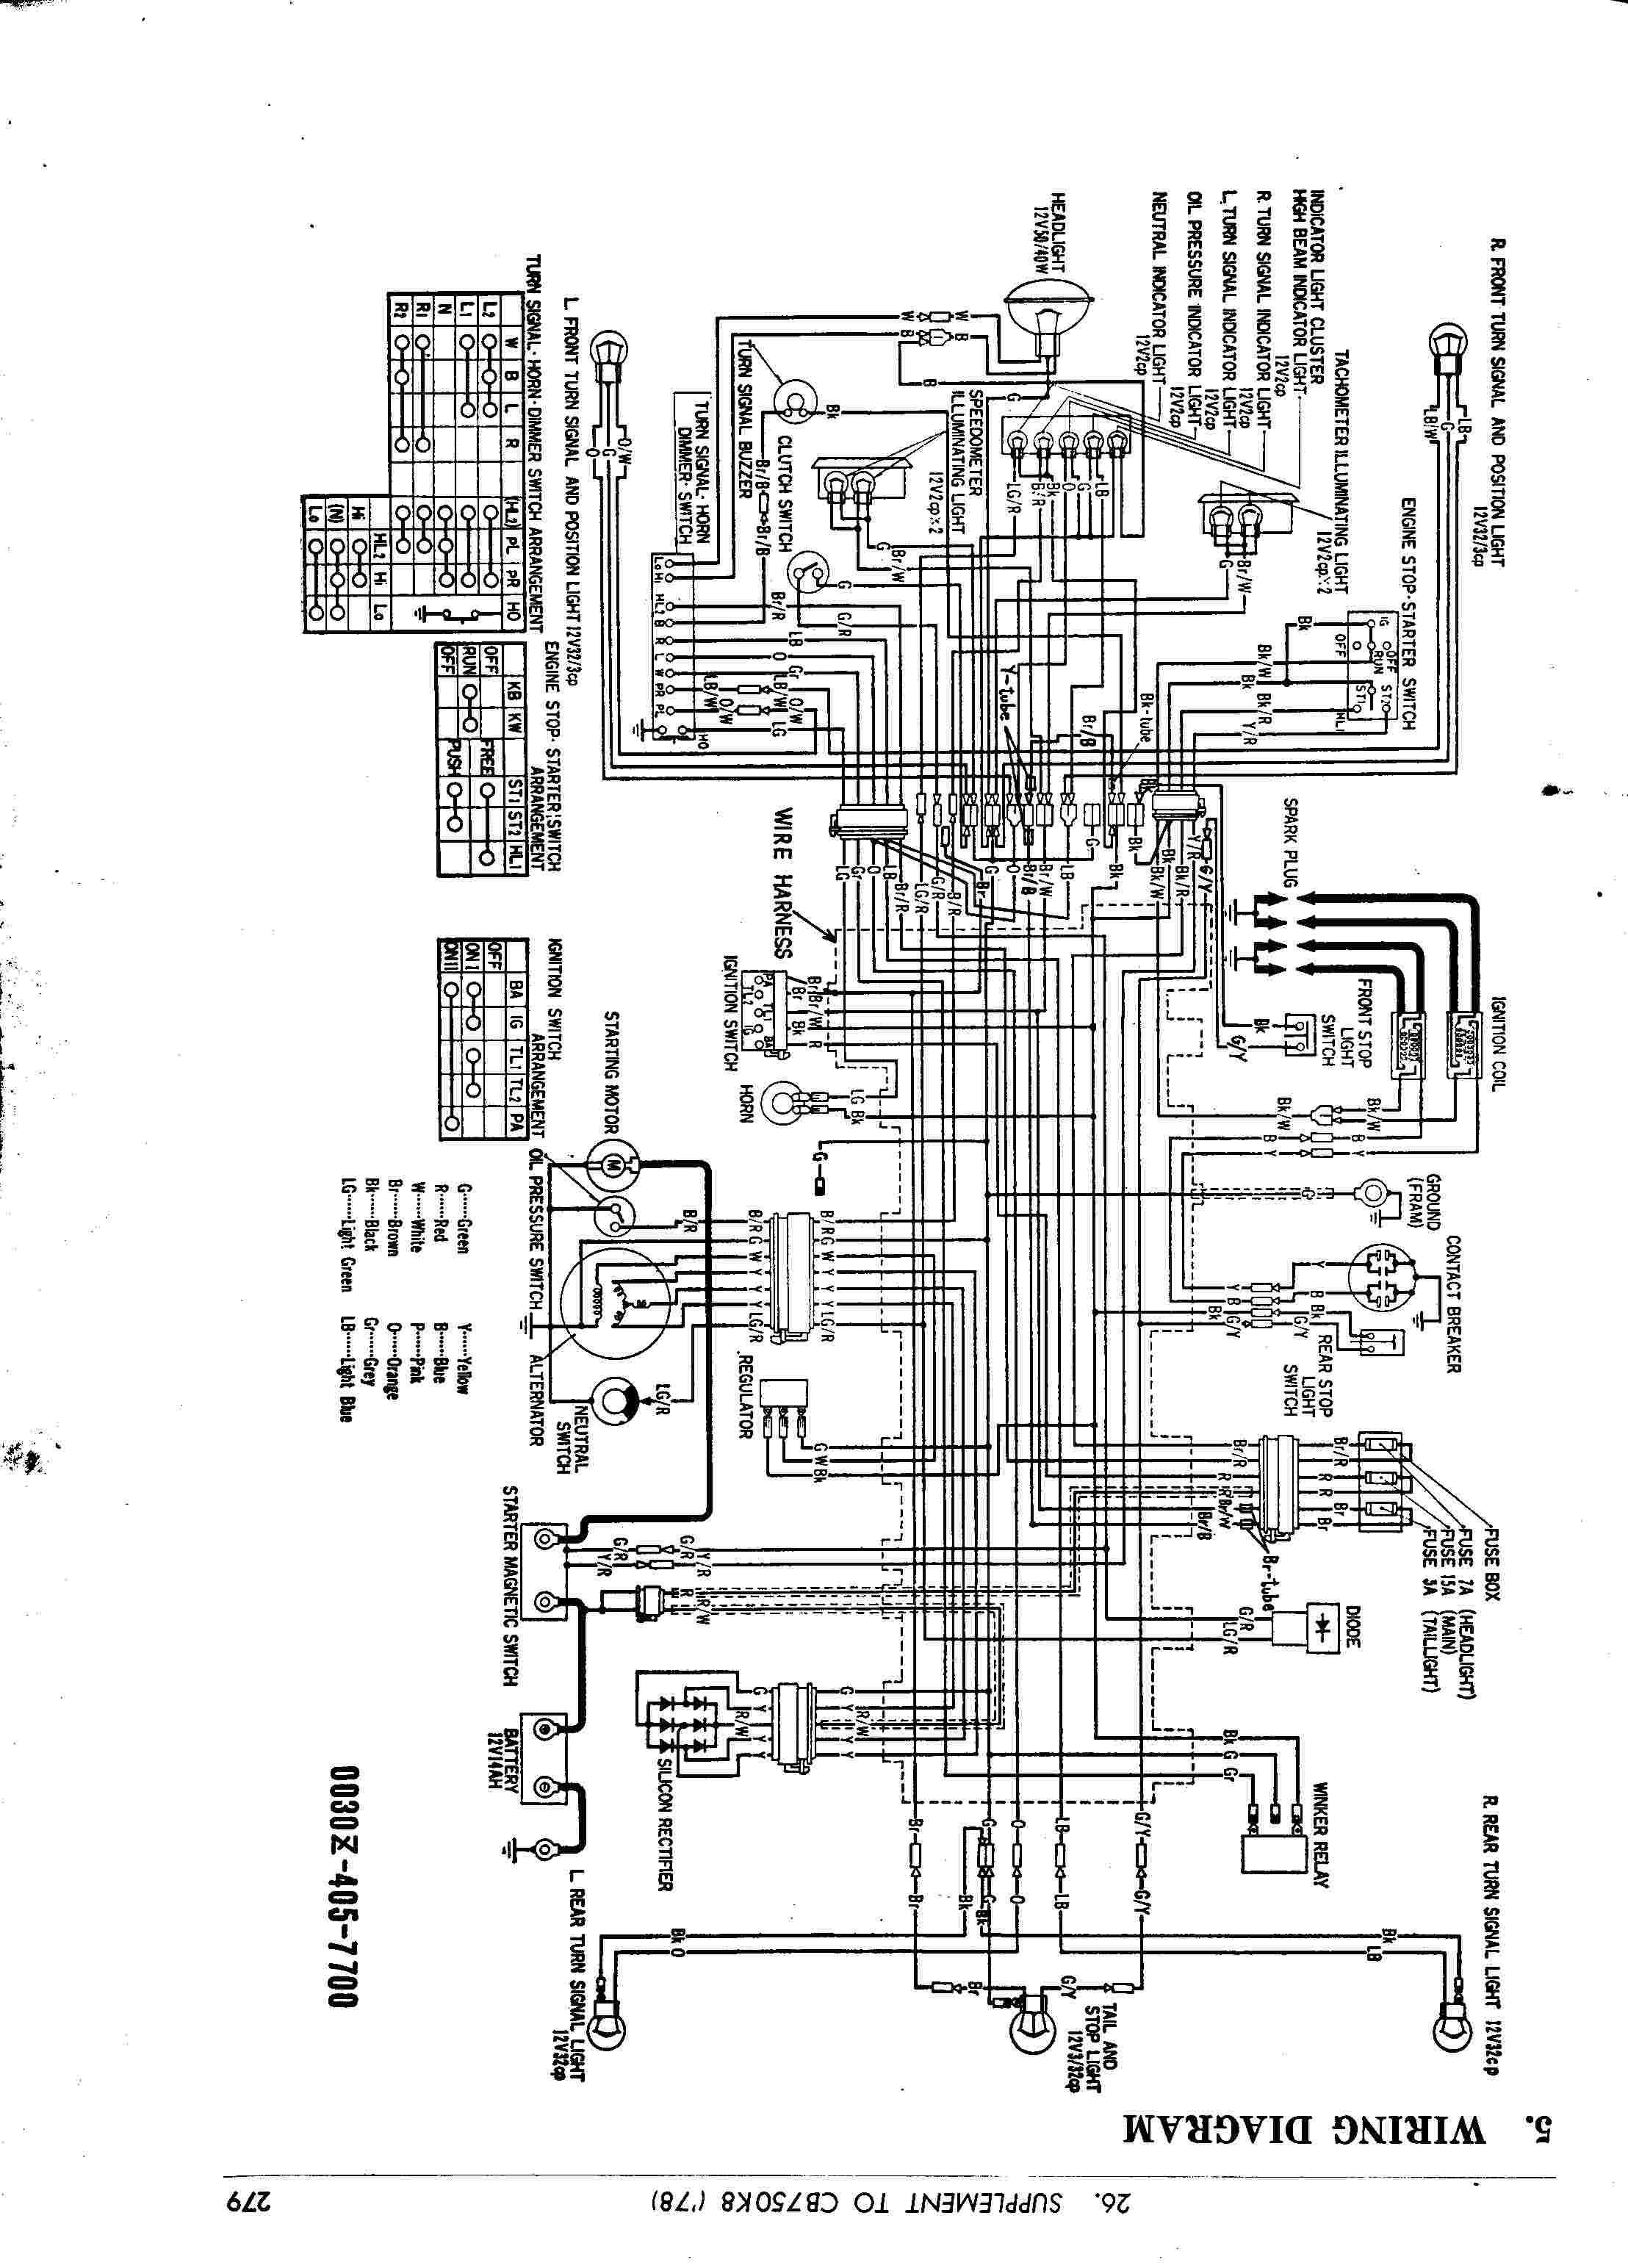 xs1100 wiring diagram wiring diagram rh w86 reise ferienplan de Super Beetle Wiring Diagram 1995 Jaguar XJ6 Wiring-Diagram